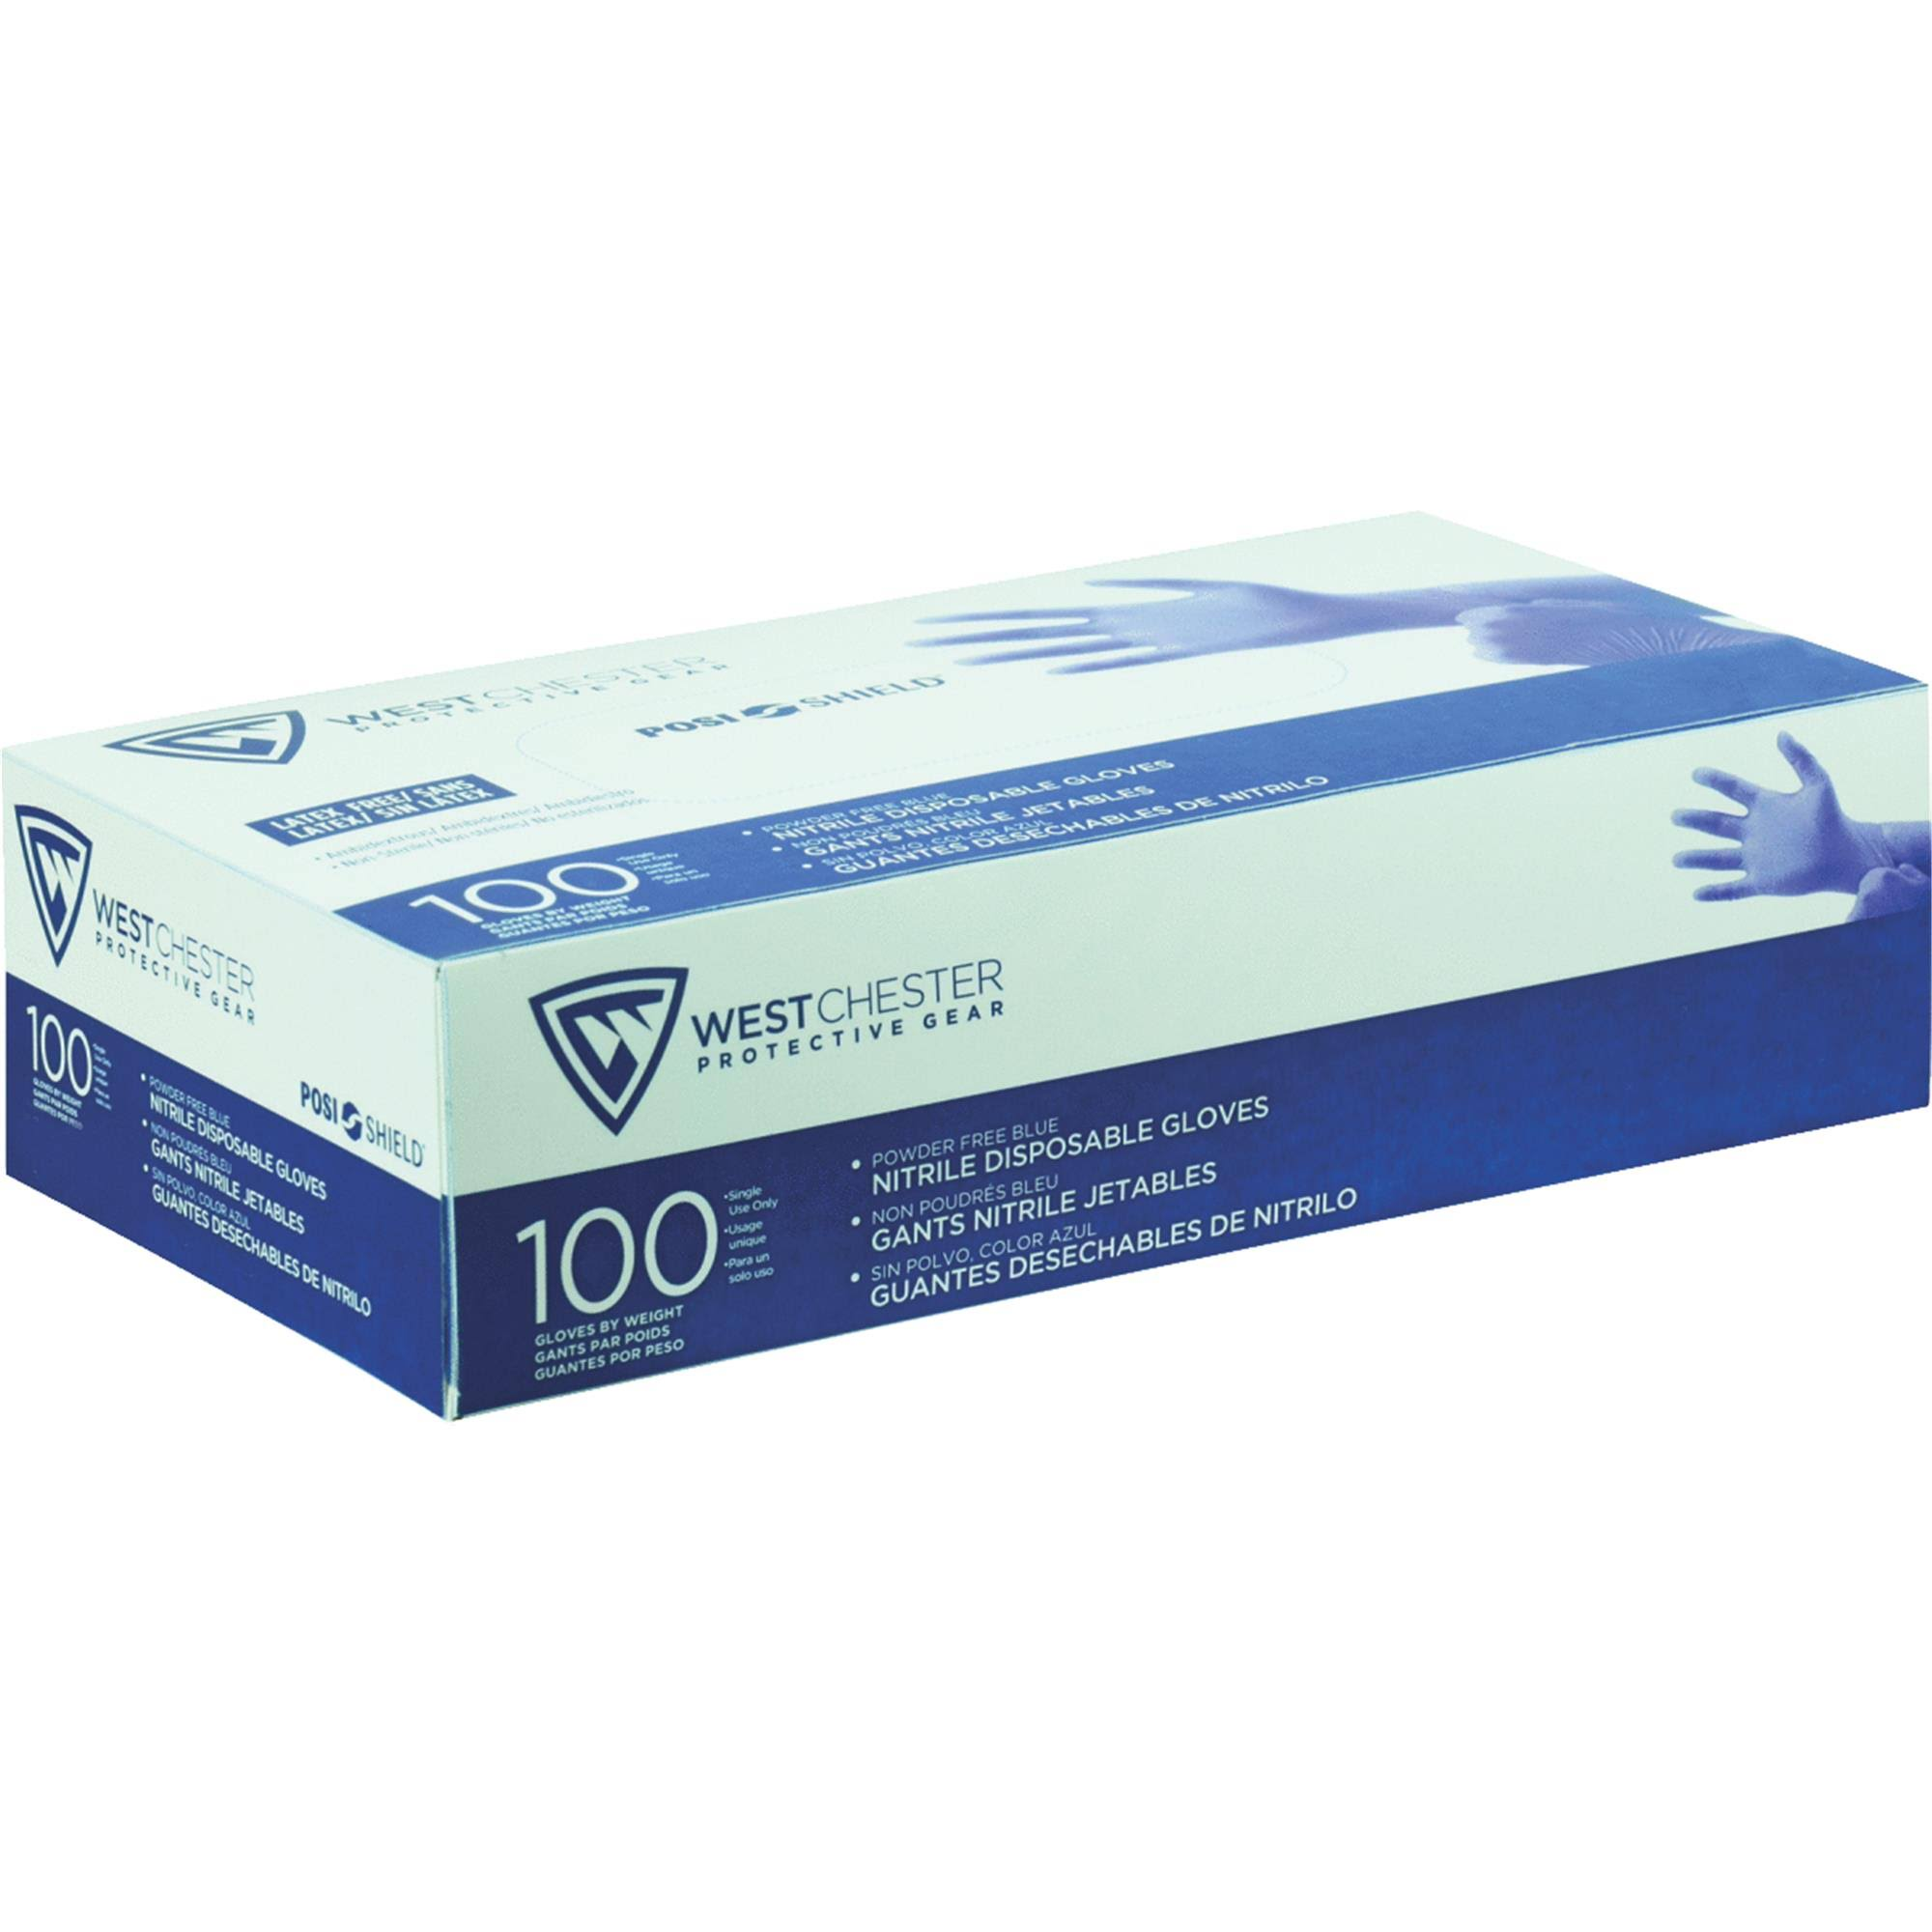 West Chester Food Grade Disposable Nitrile Gloves - Light Blue, Medium, 100ct